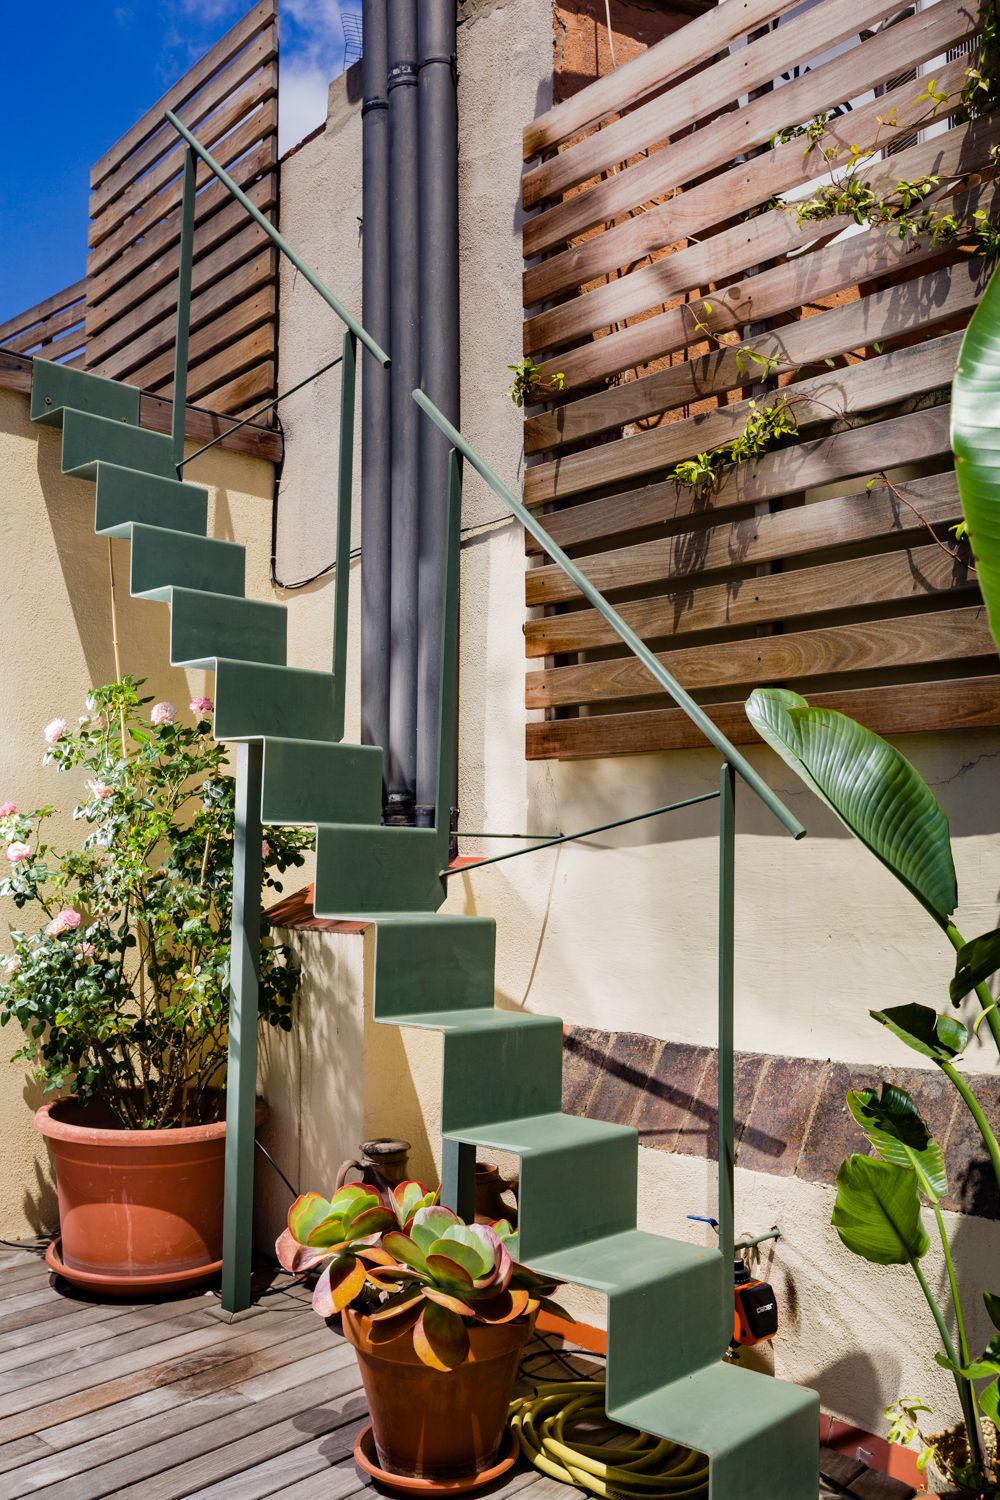 Origami Stair Roof Terrace In Barcelona Pergola Shade Diy Outdoor Stairs Roof Terrace